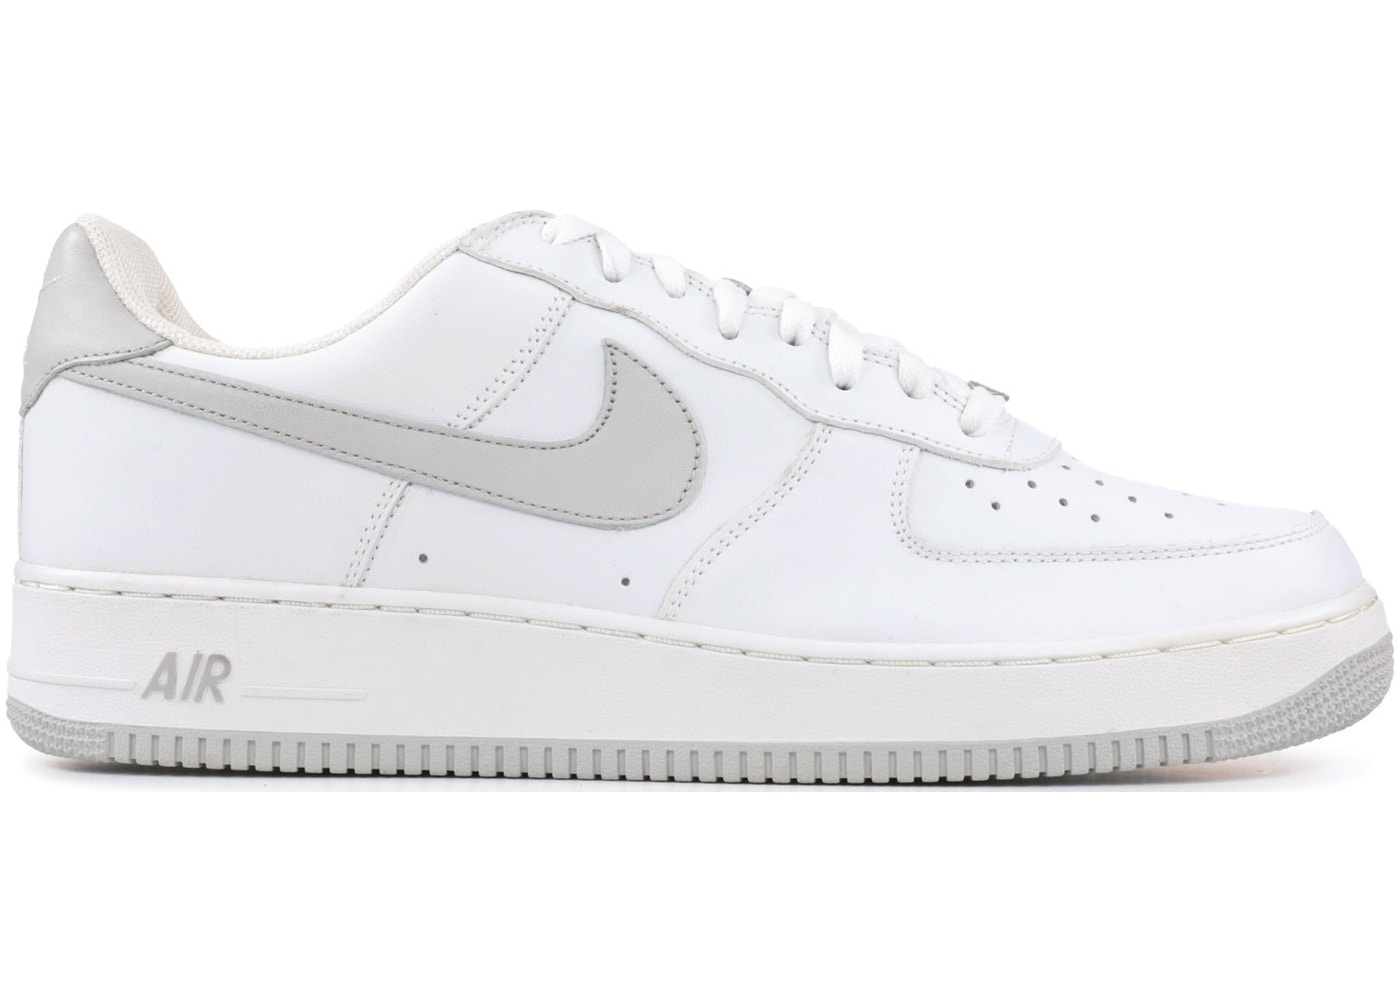 hot sale online f5bd4 e2768 Air Force 1 Low White Neutral Grey (2004) - 306353-101